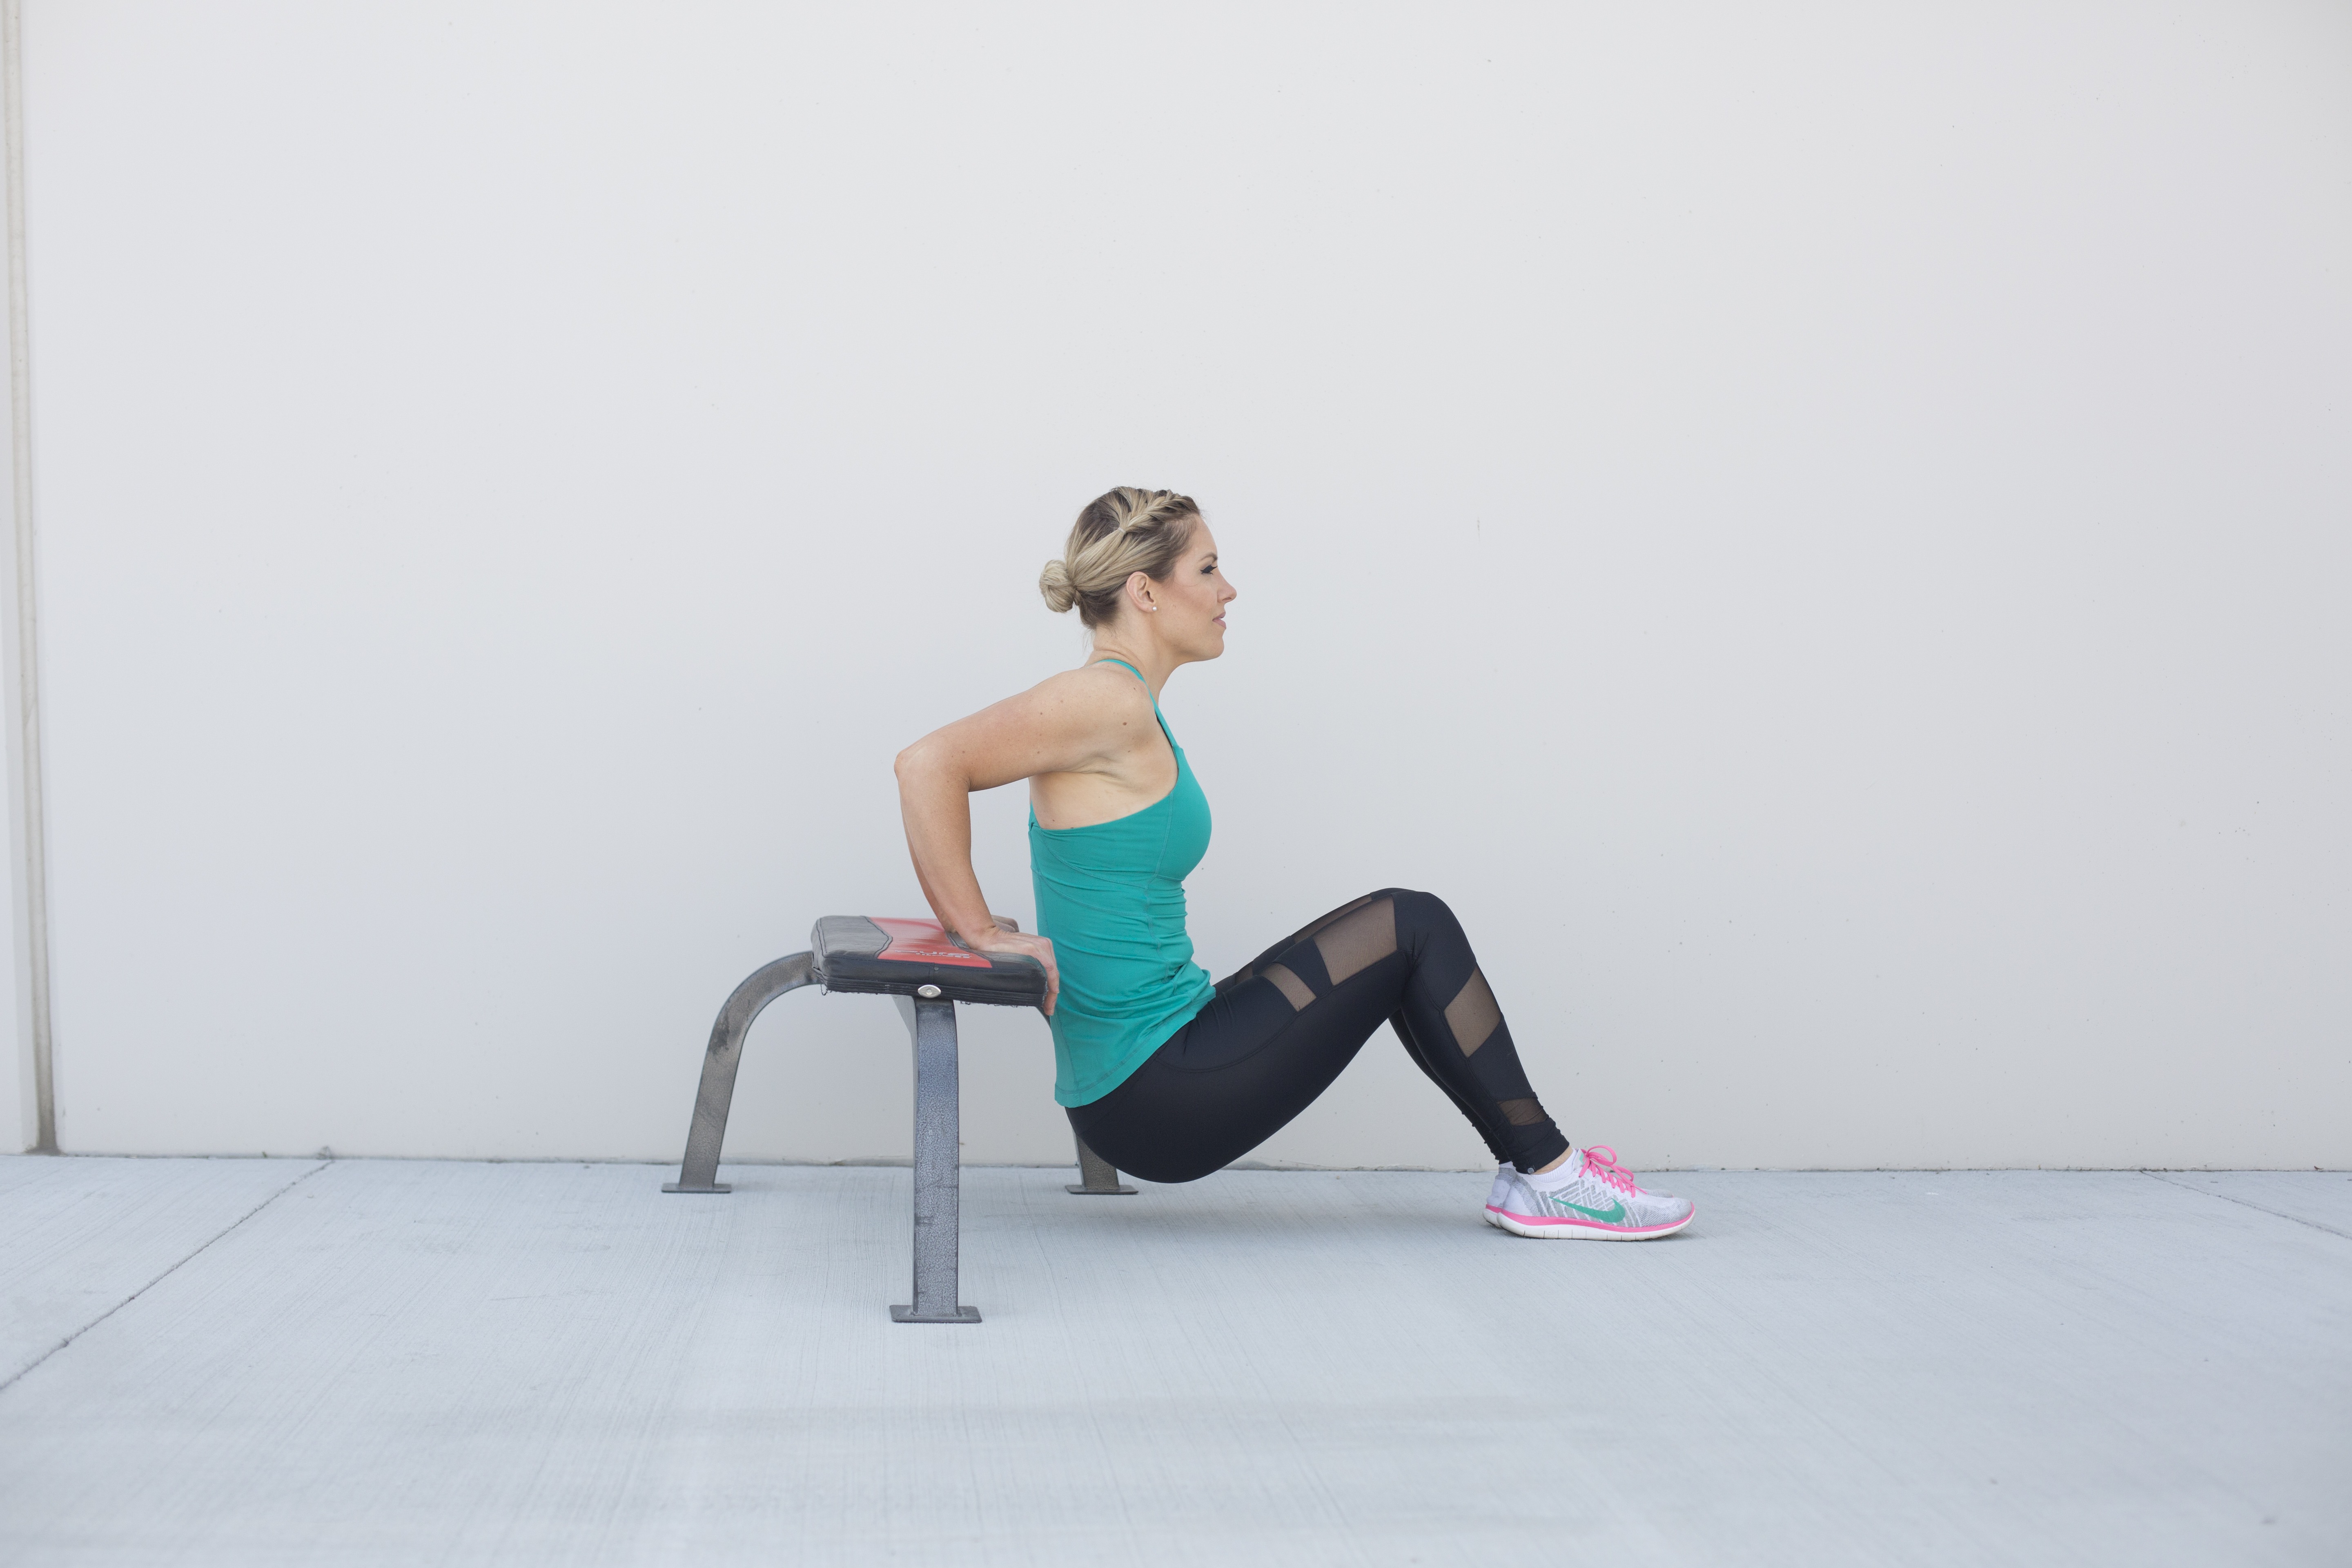 Tricep Dip Exercise Form Step 2